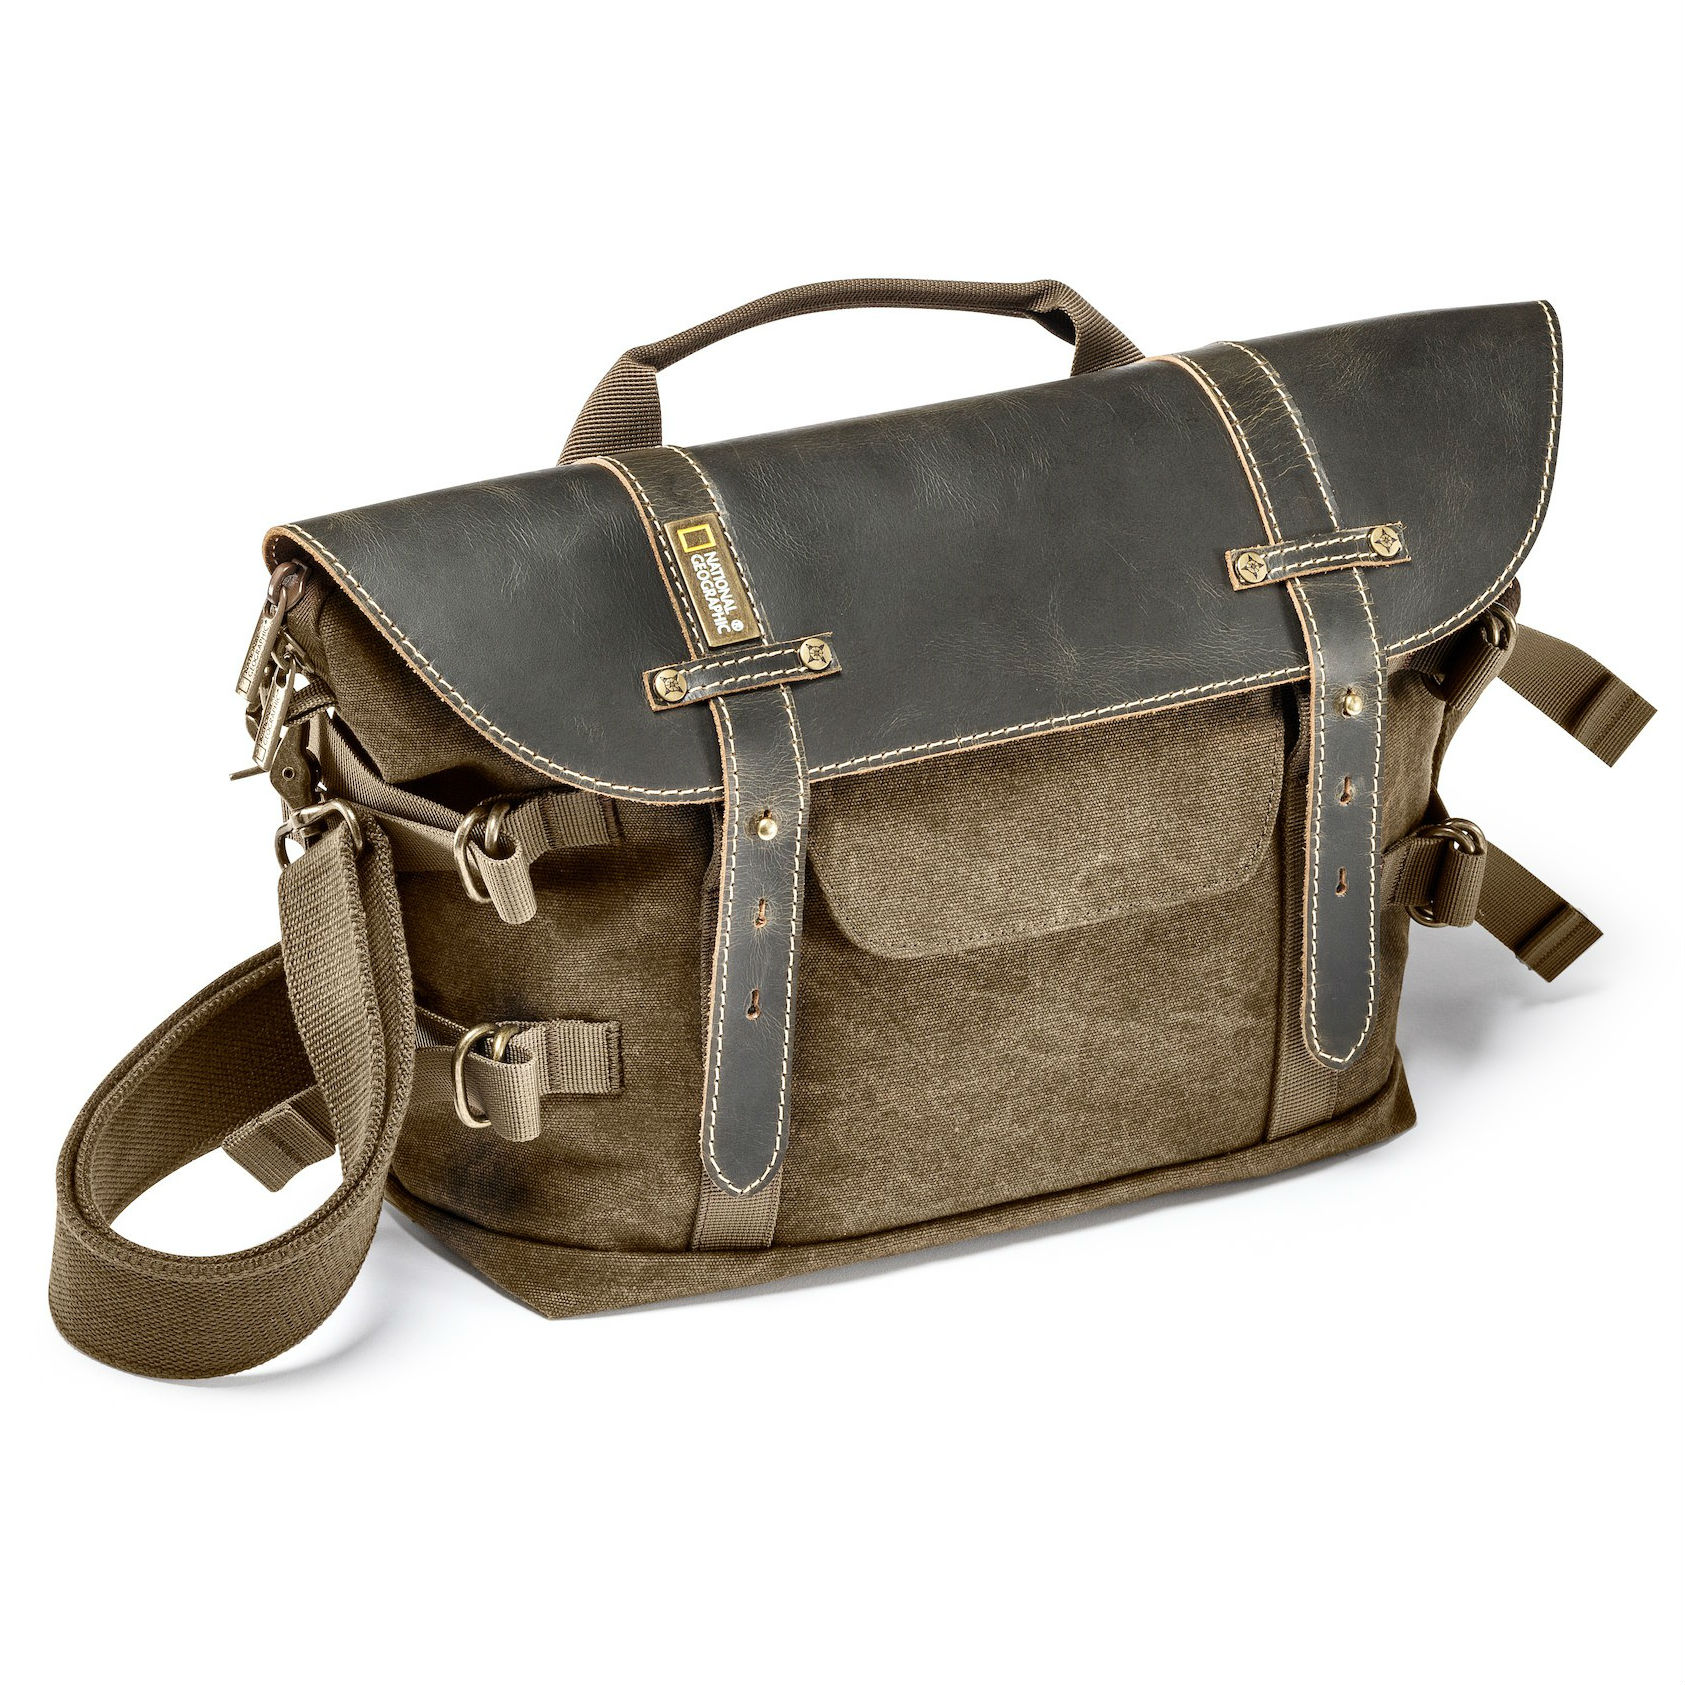 Image of National Geographic Africa Midi satchel - NG A2140